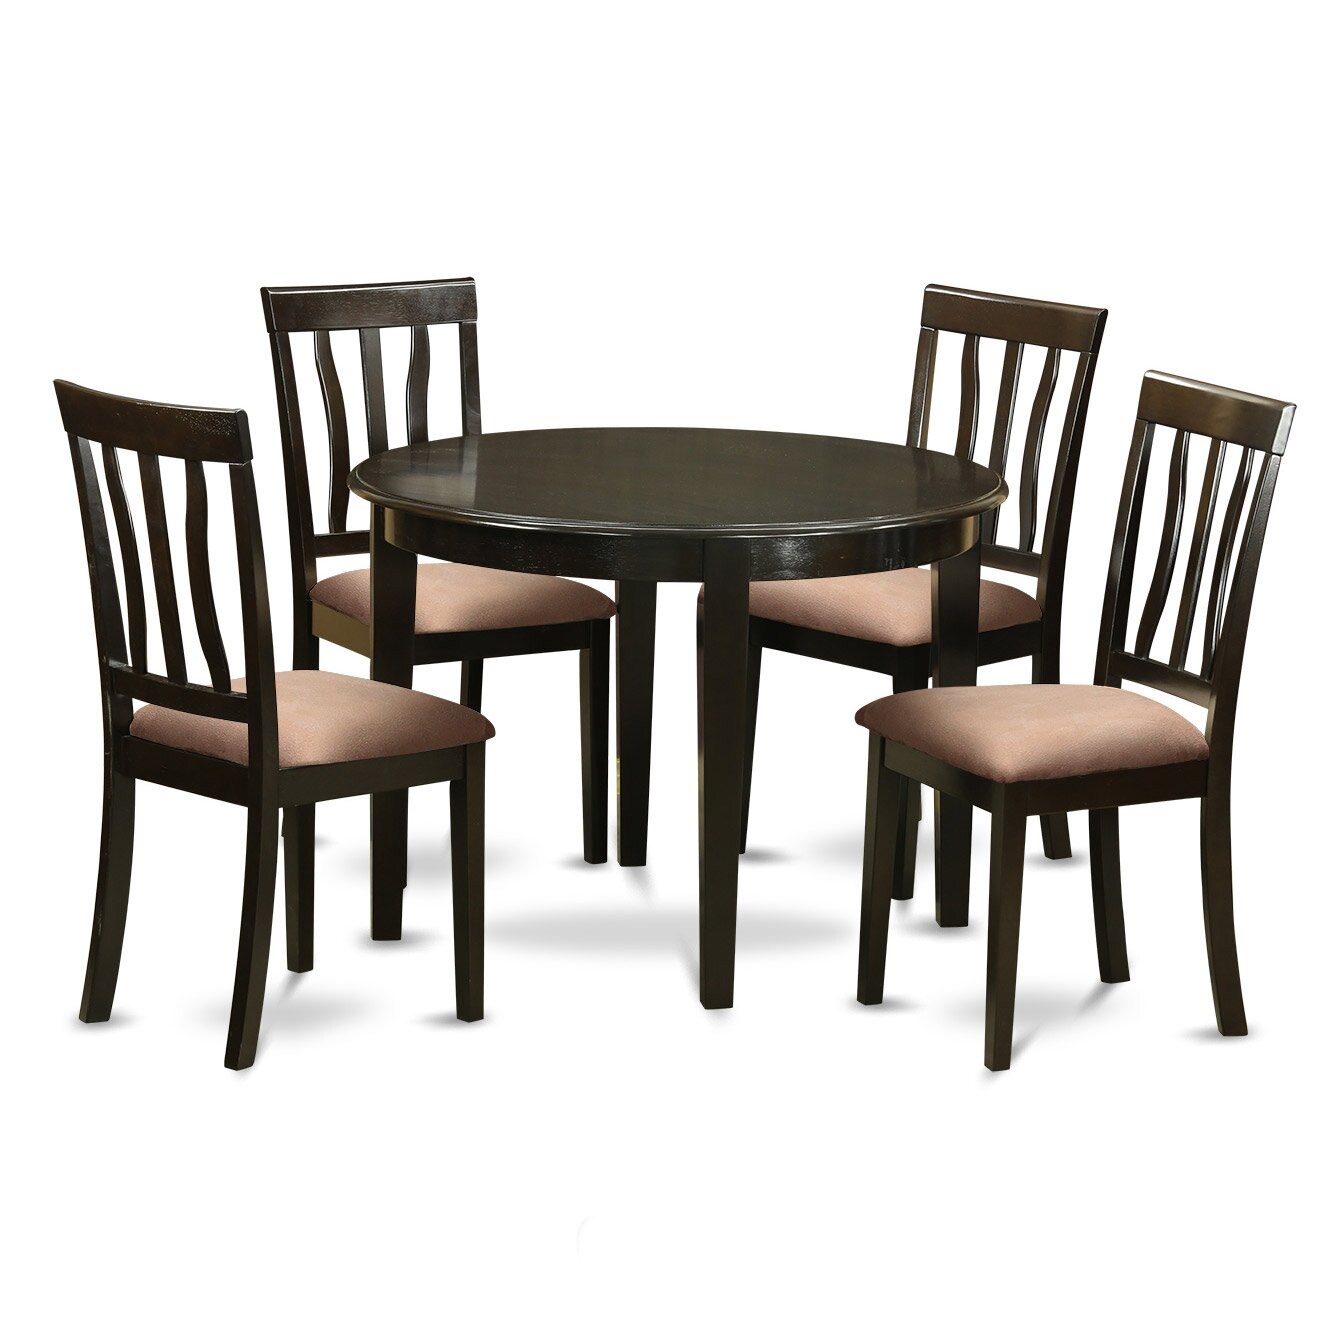 Wooden importers boston 5 piece dining set wayfair for Kitchen table and stools set